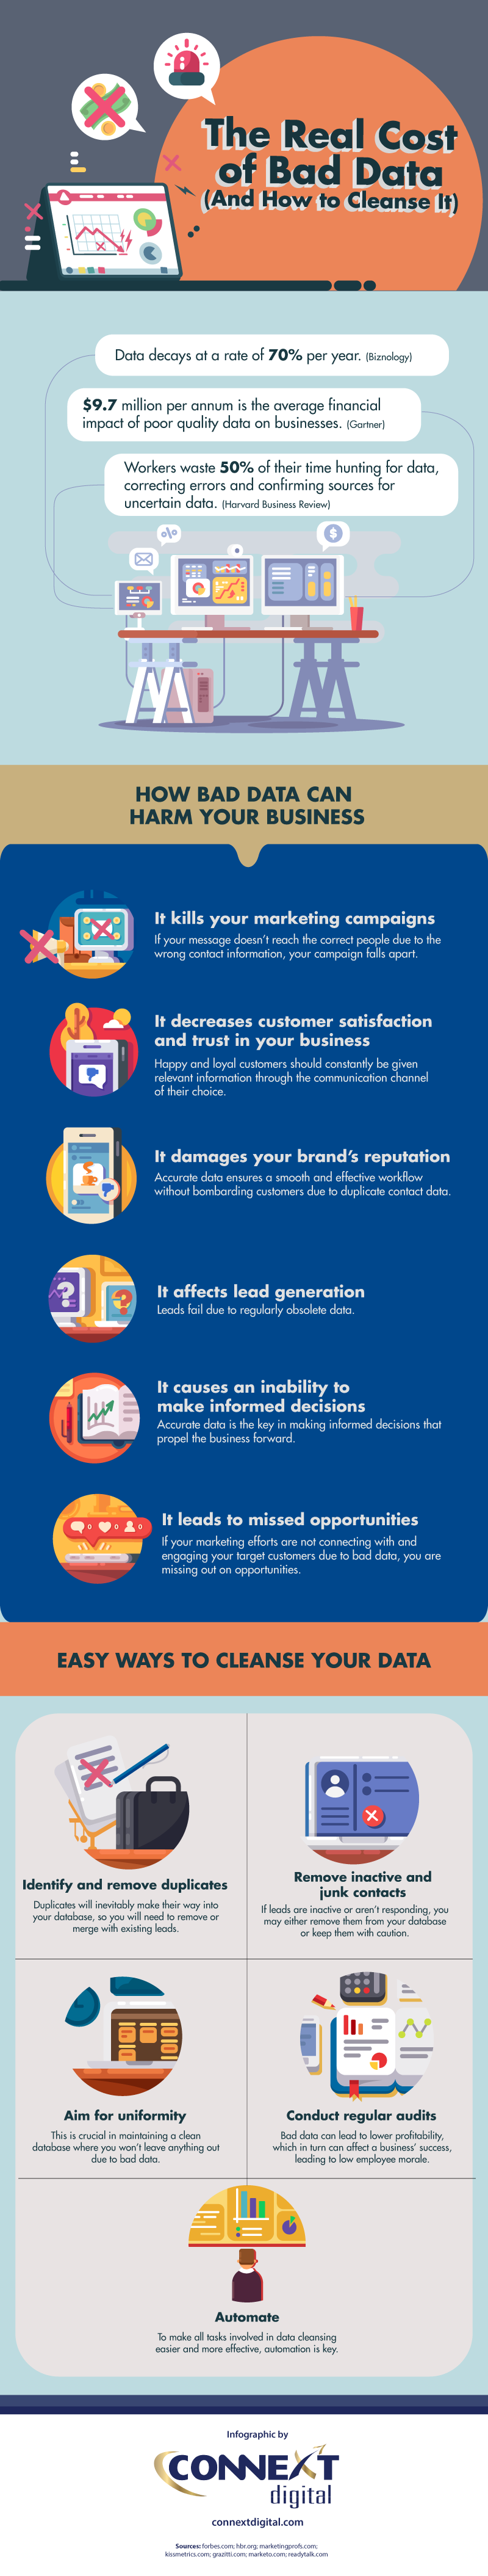 The Real Cost of Bad Data And How to Cleanse It Infographic